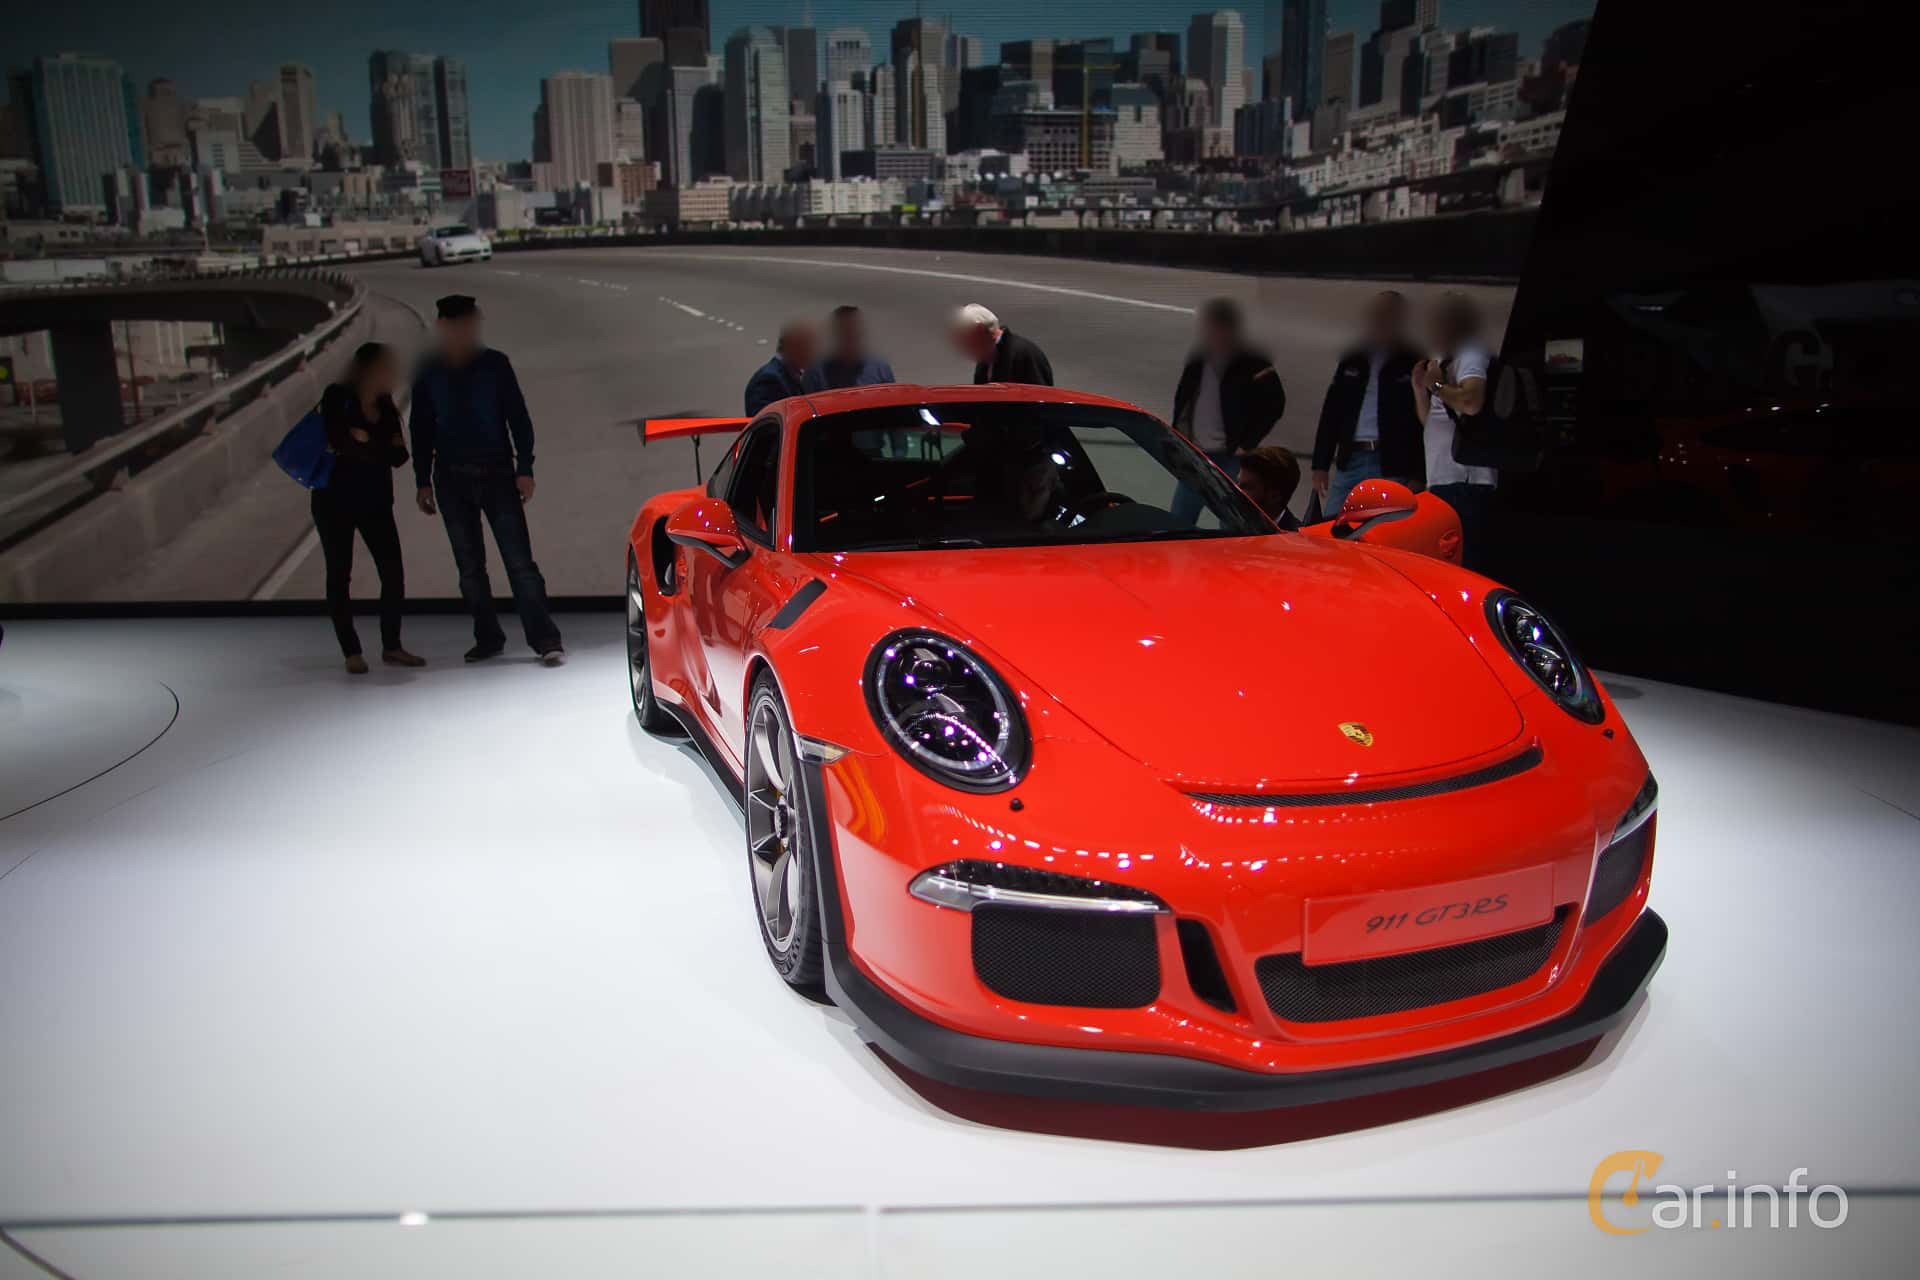 Porsche 911 GT3 RS 4.0 H6 PDK, 500hp, 2016 at Geneva Motor Show 2015